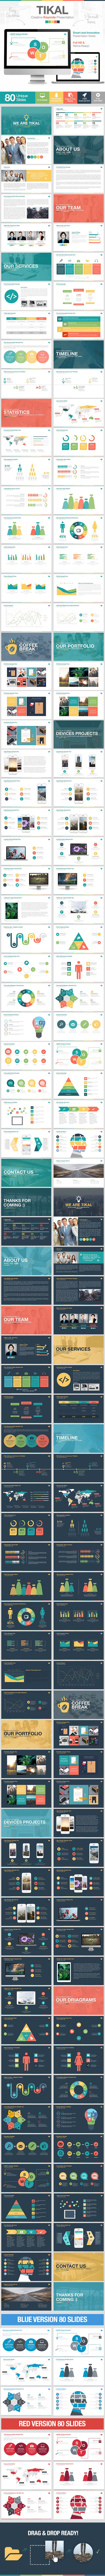 Tikal Keynote Presentation Template — Keynote KEY #projects #template • Available here → https://graphicriver.net/item/tikal-keynote-presentation-template/9436797?ref=pxcr